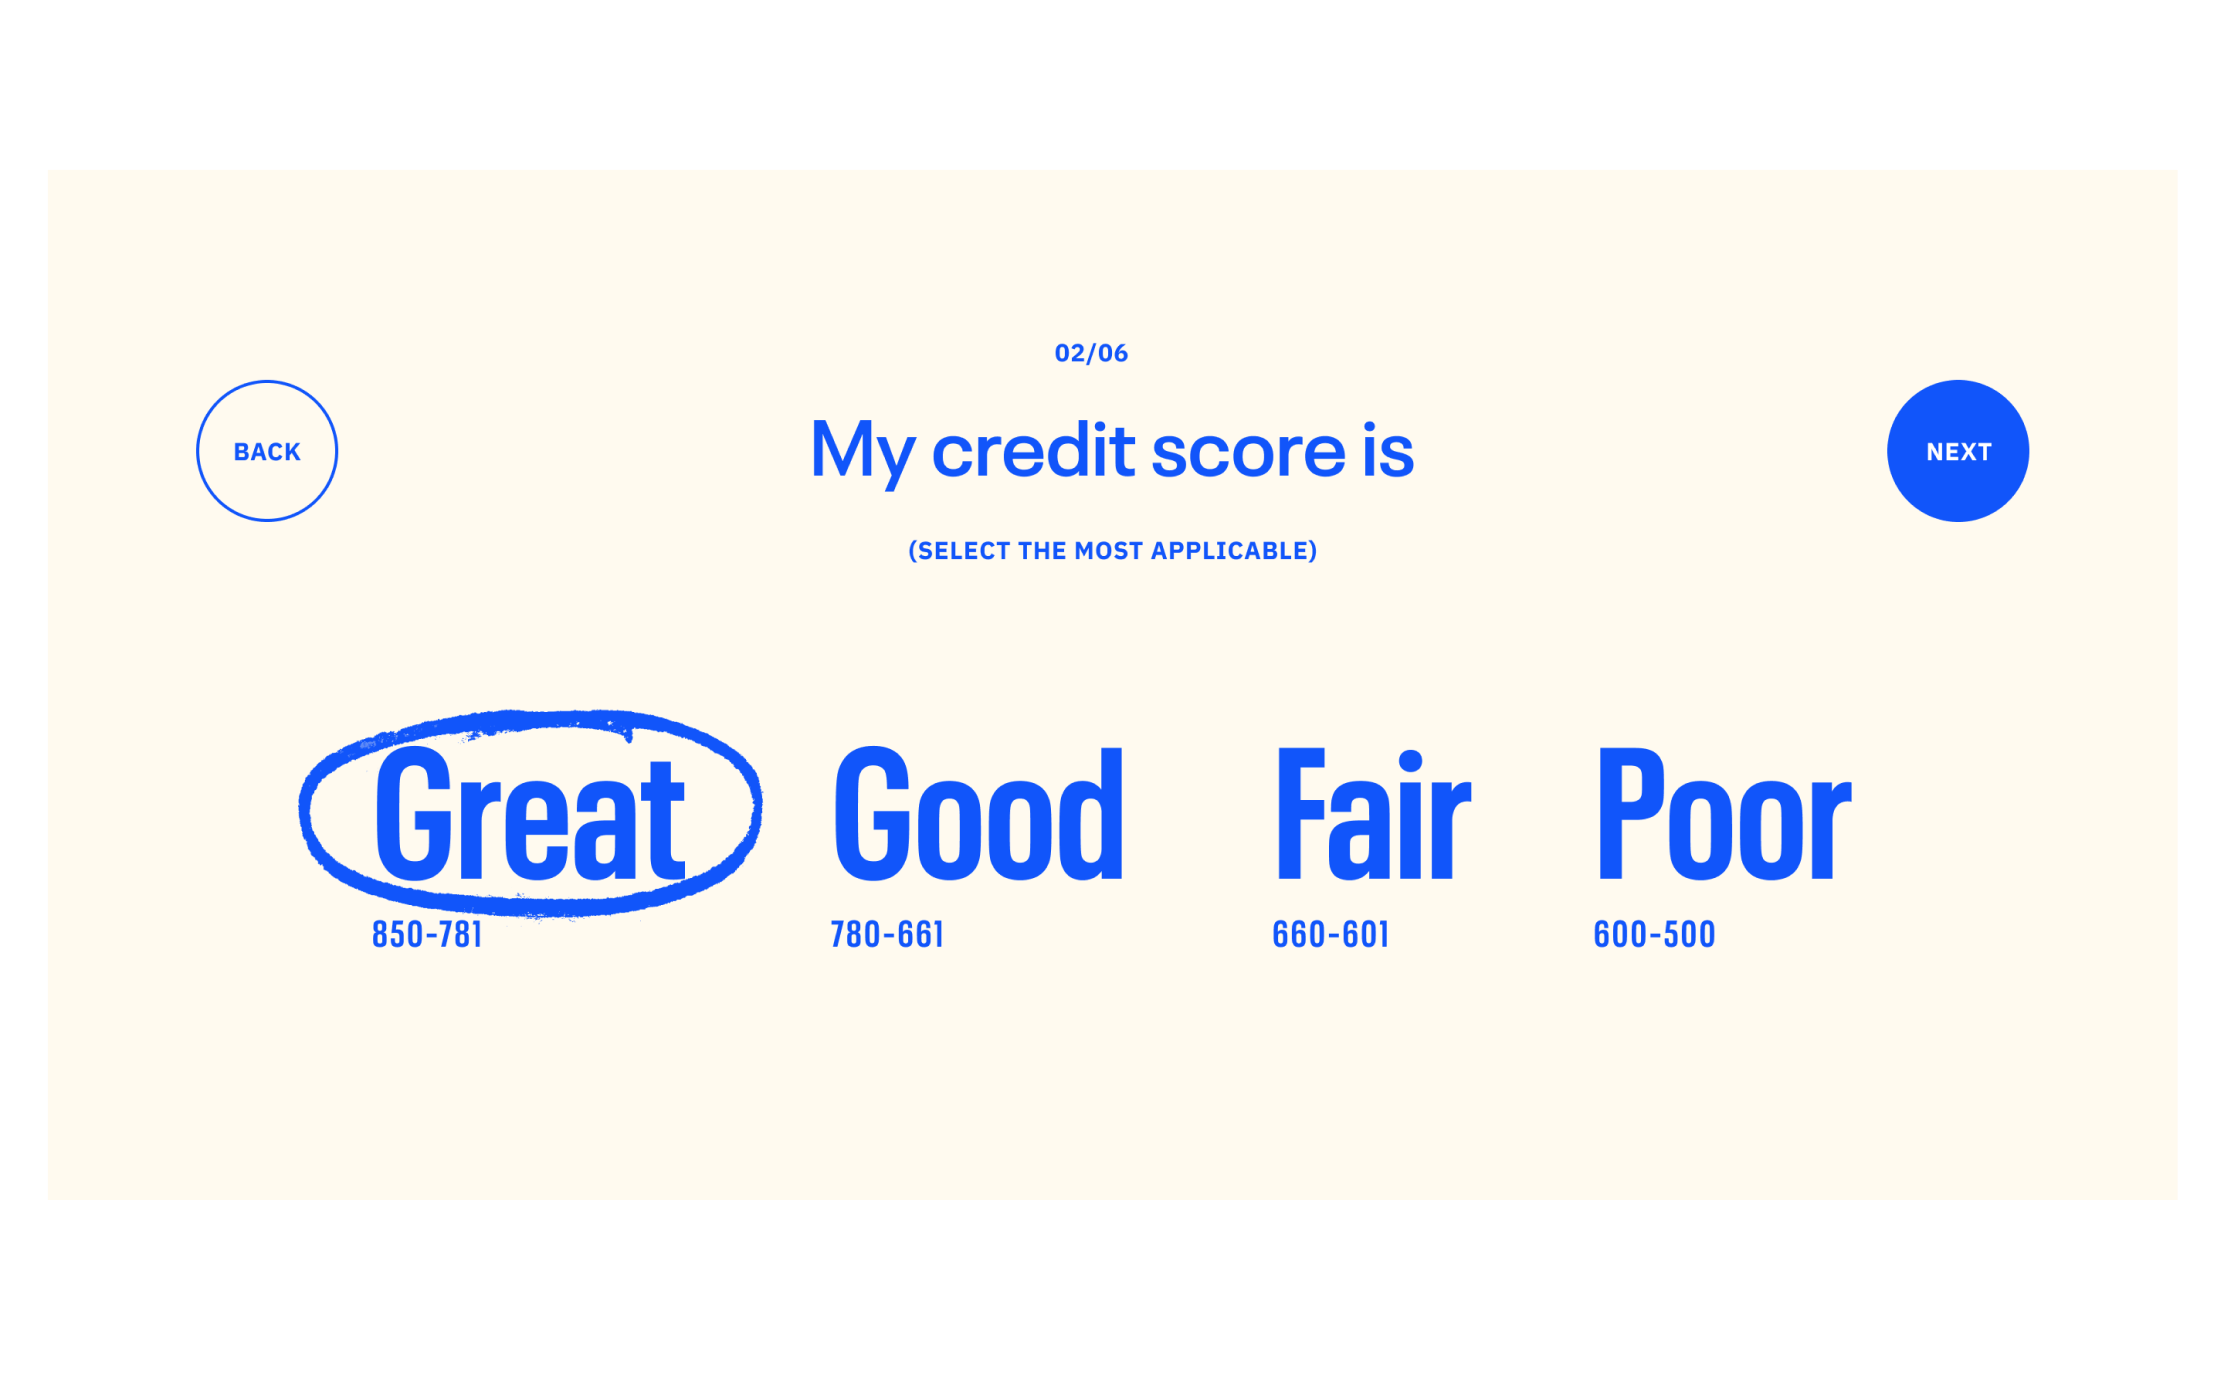 UI of a credit score selector with options 'Great', 'Good', 'Fair', and 'Poor'